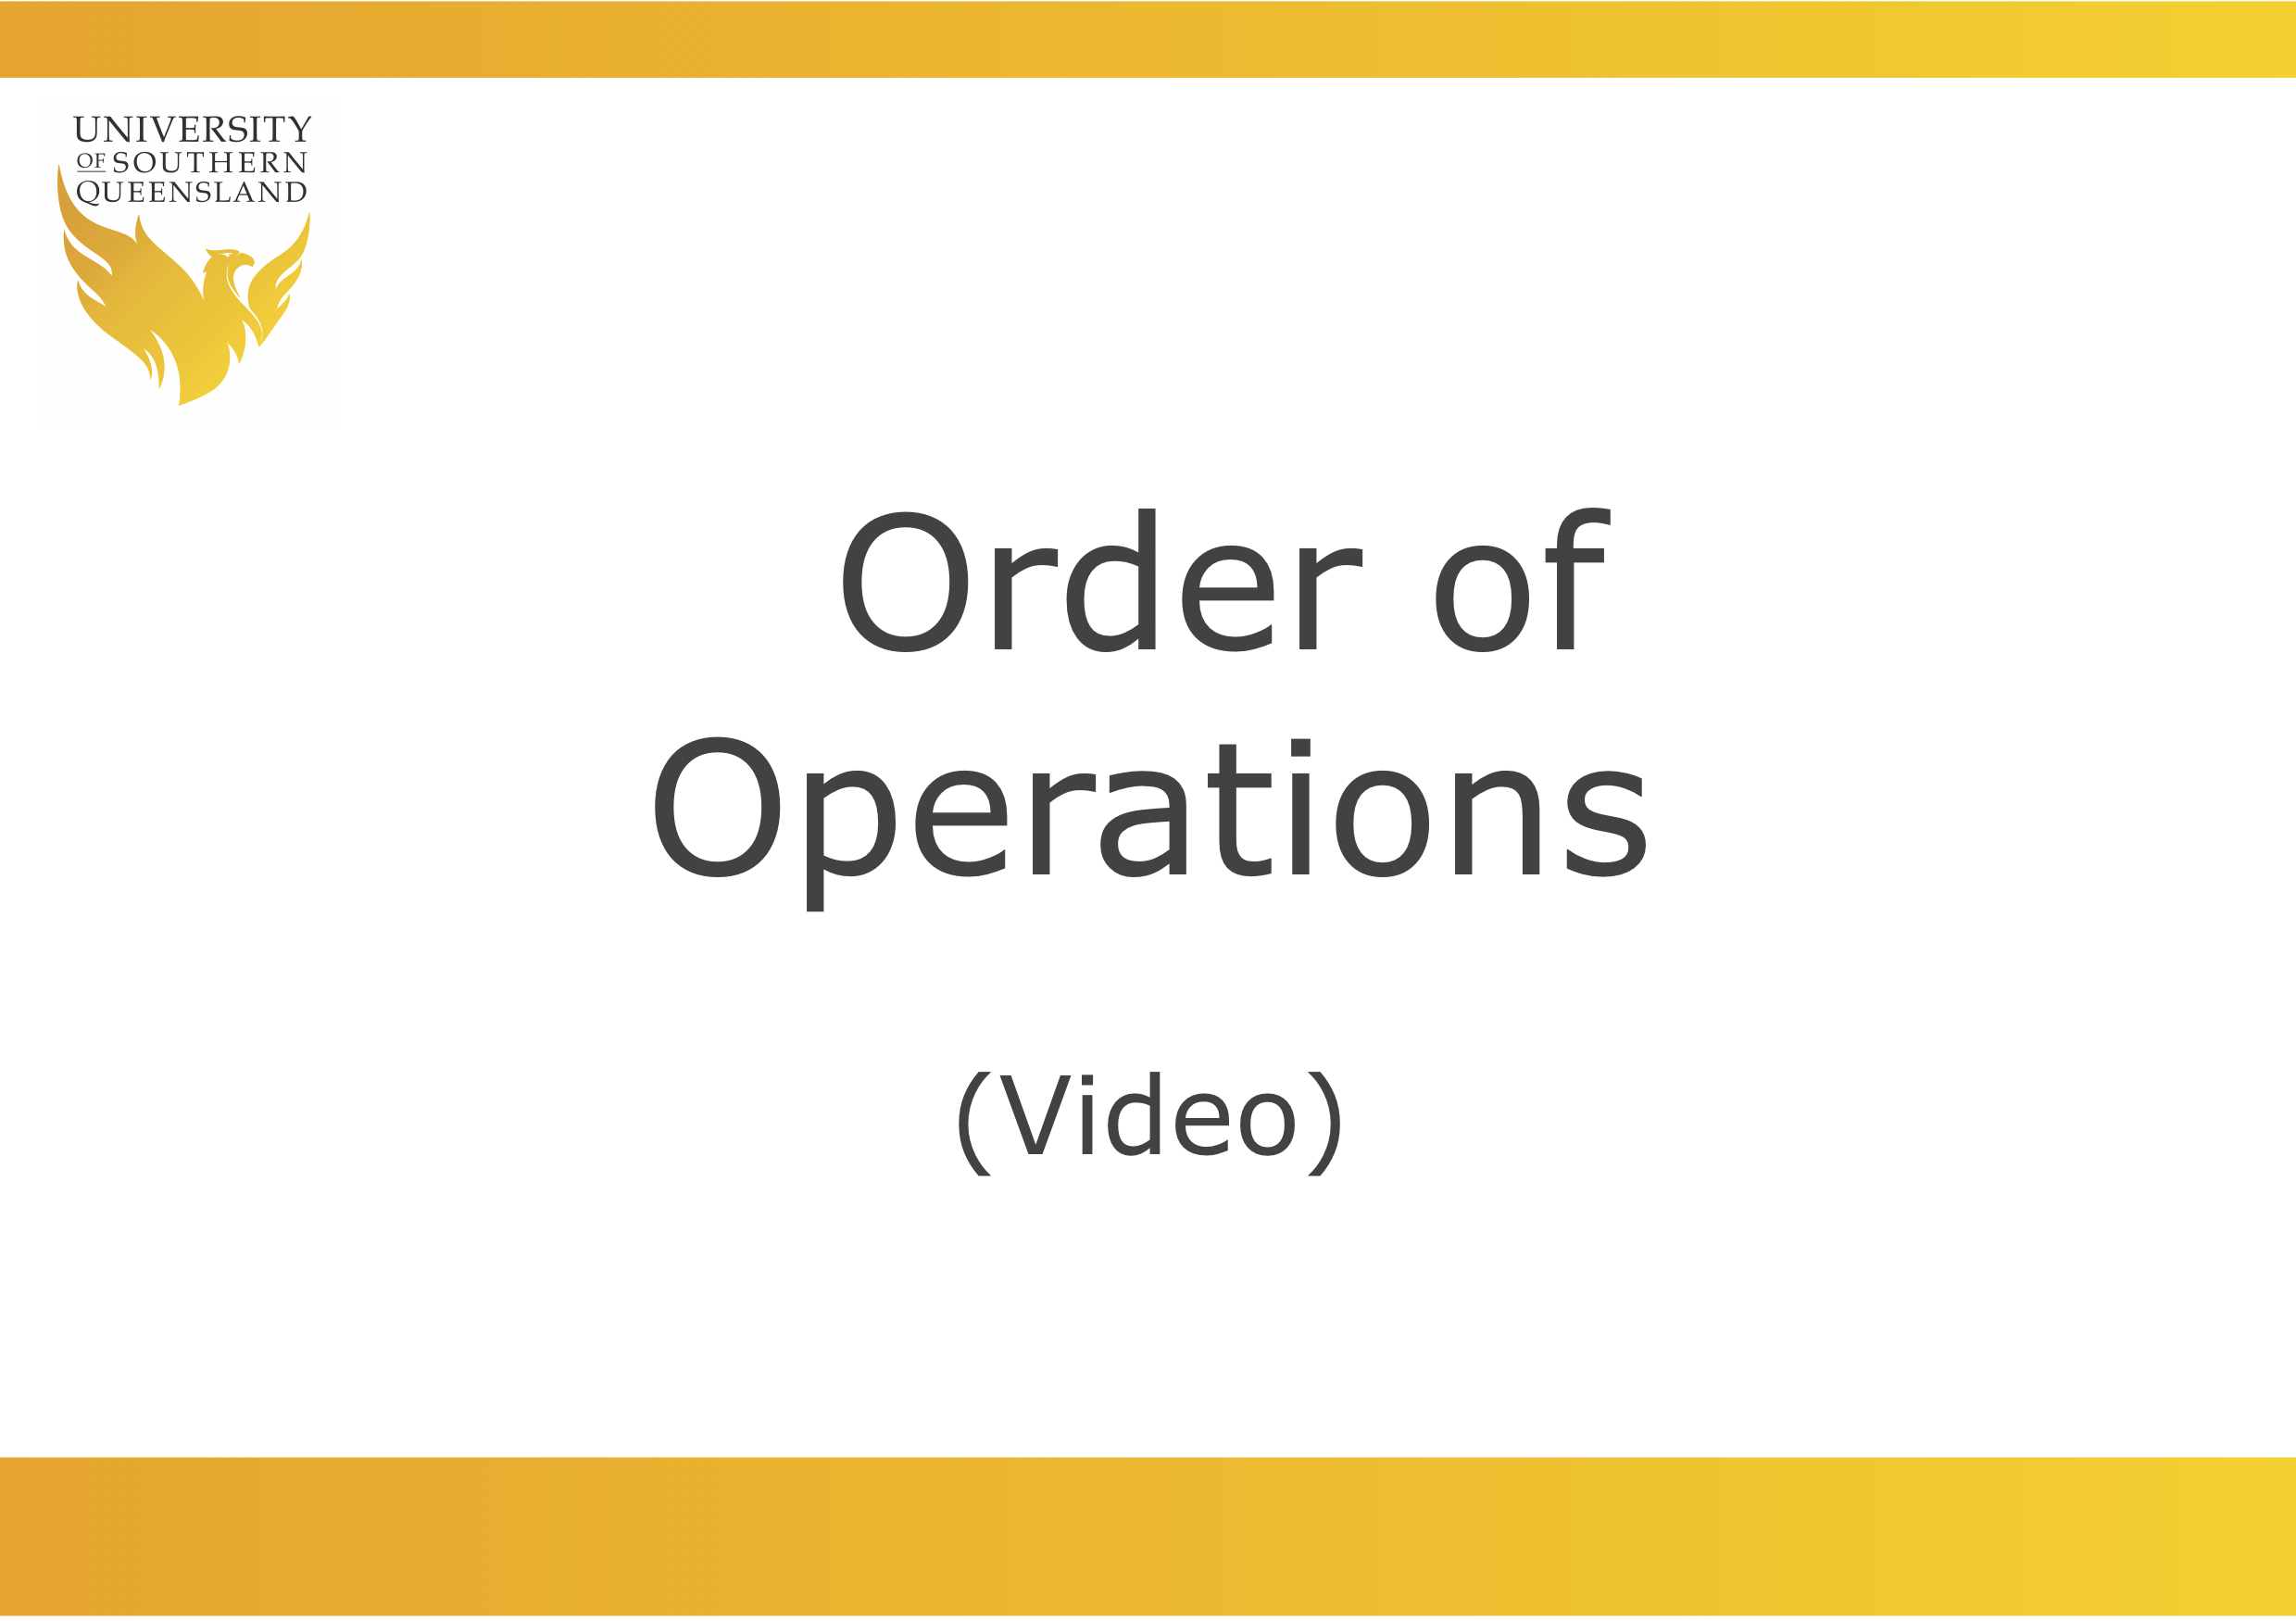 image for the order of operations video